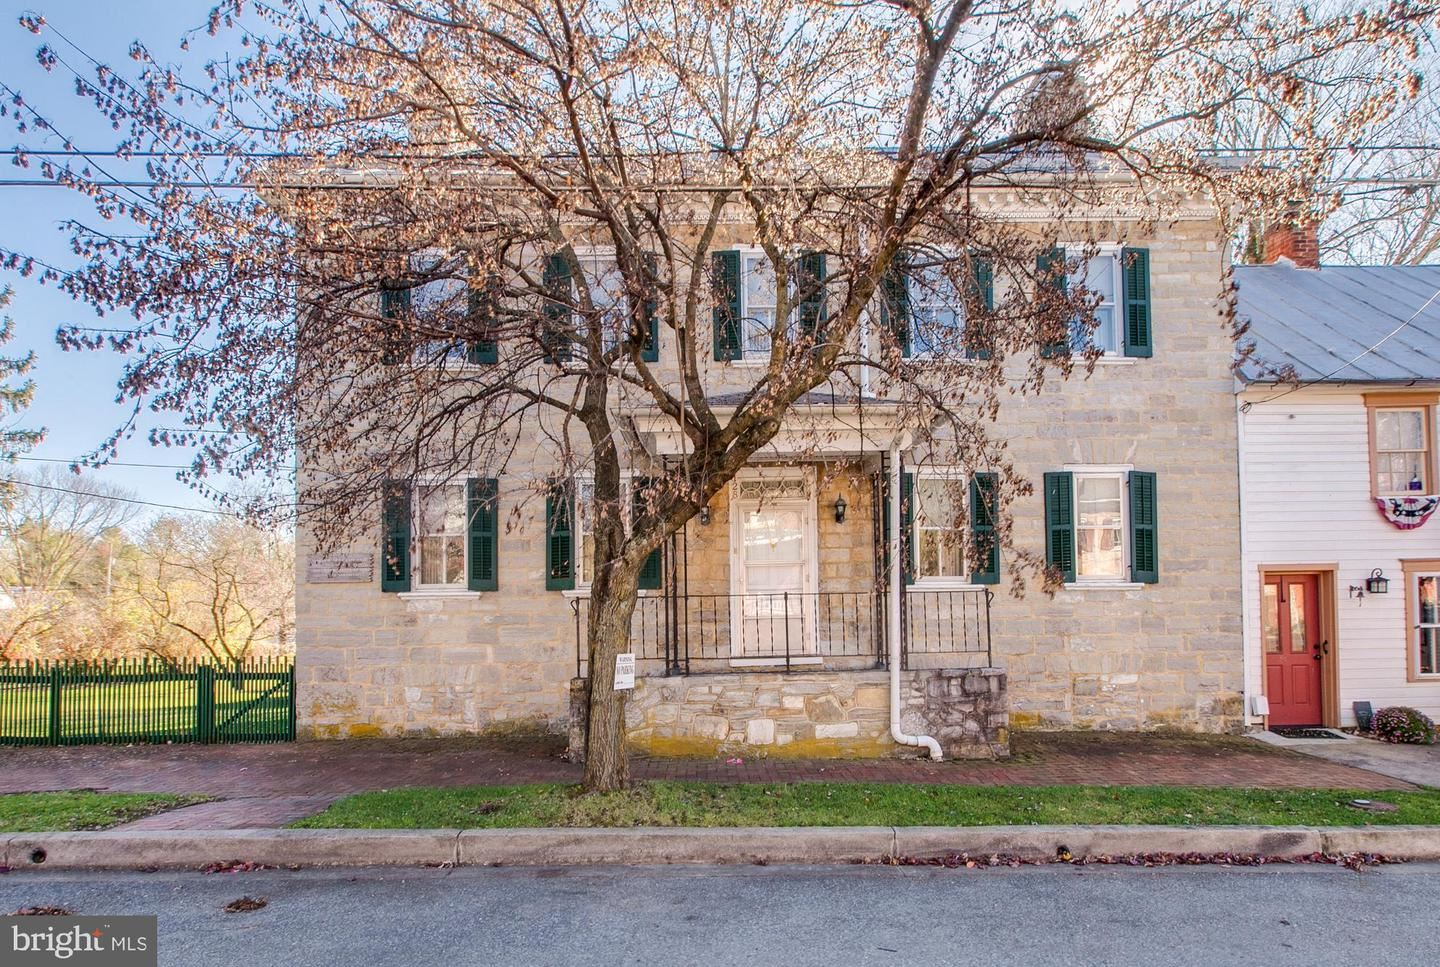 Photo of 128 E MAIN ST, SHARPSBURG, MD 21782 (MLS # MDWA176332)